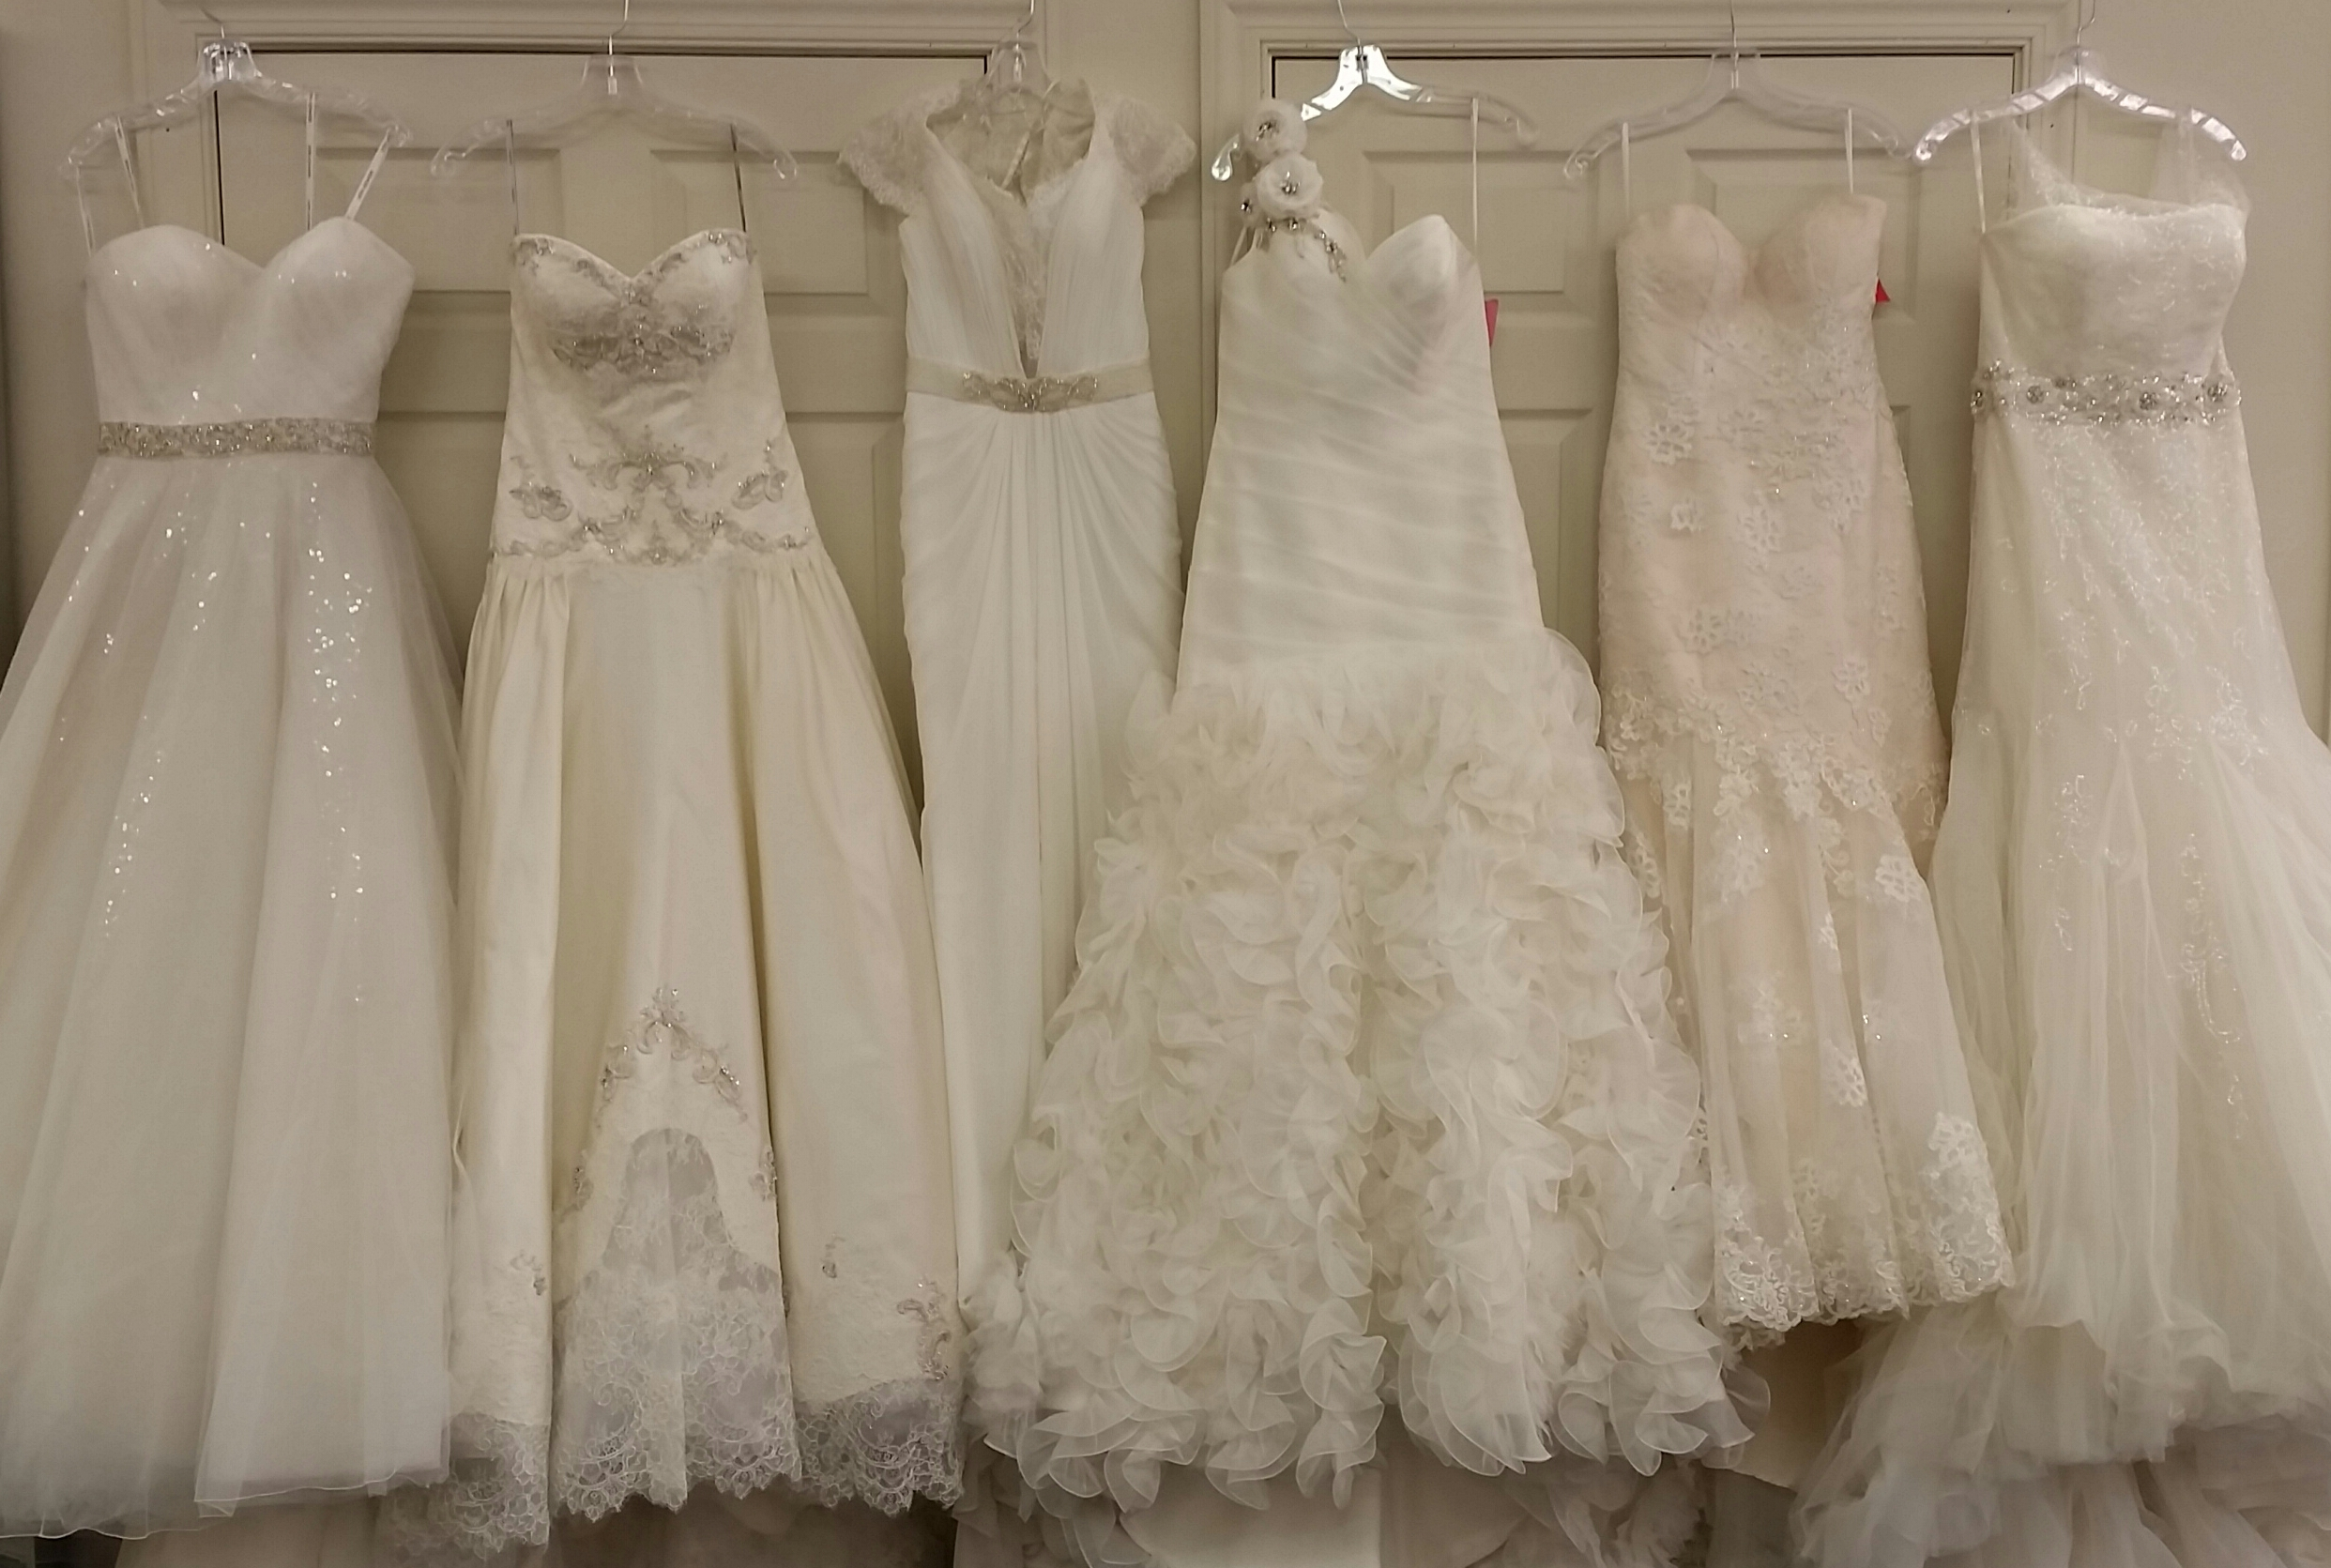 Consignment Wedding Dresses Lancaster Pa For